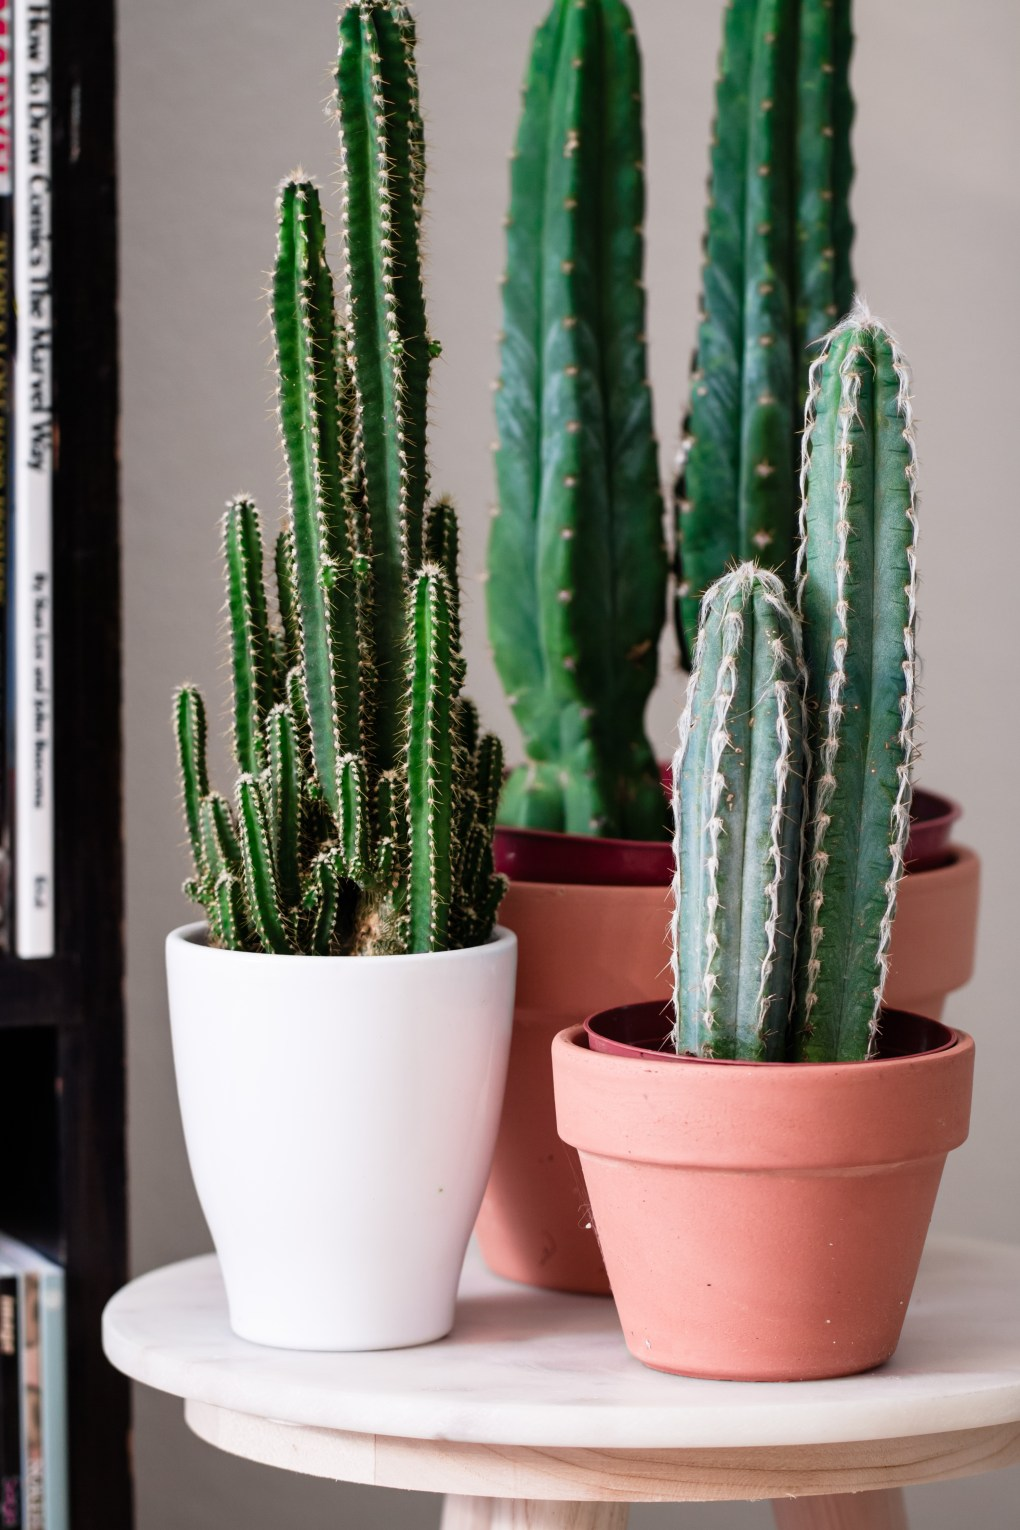 cacti cactus cactuses three potted cacti houseplants